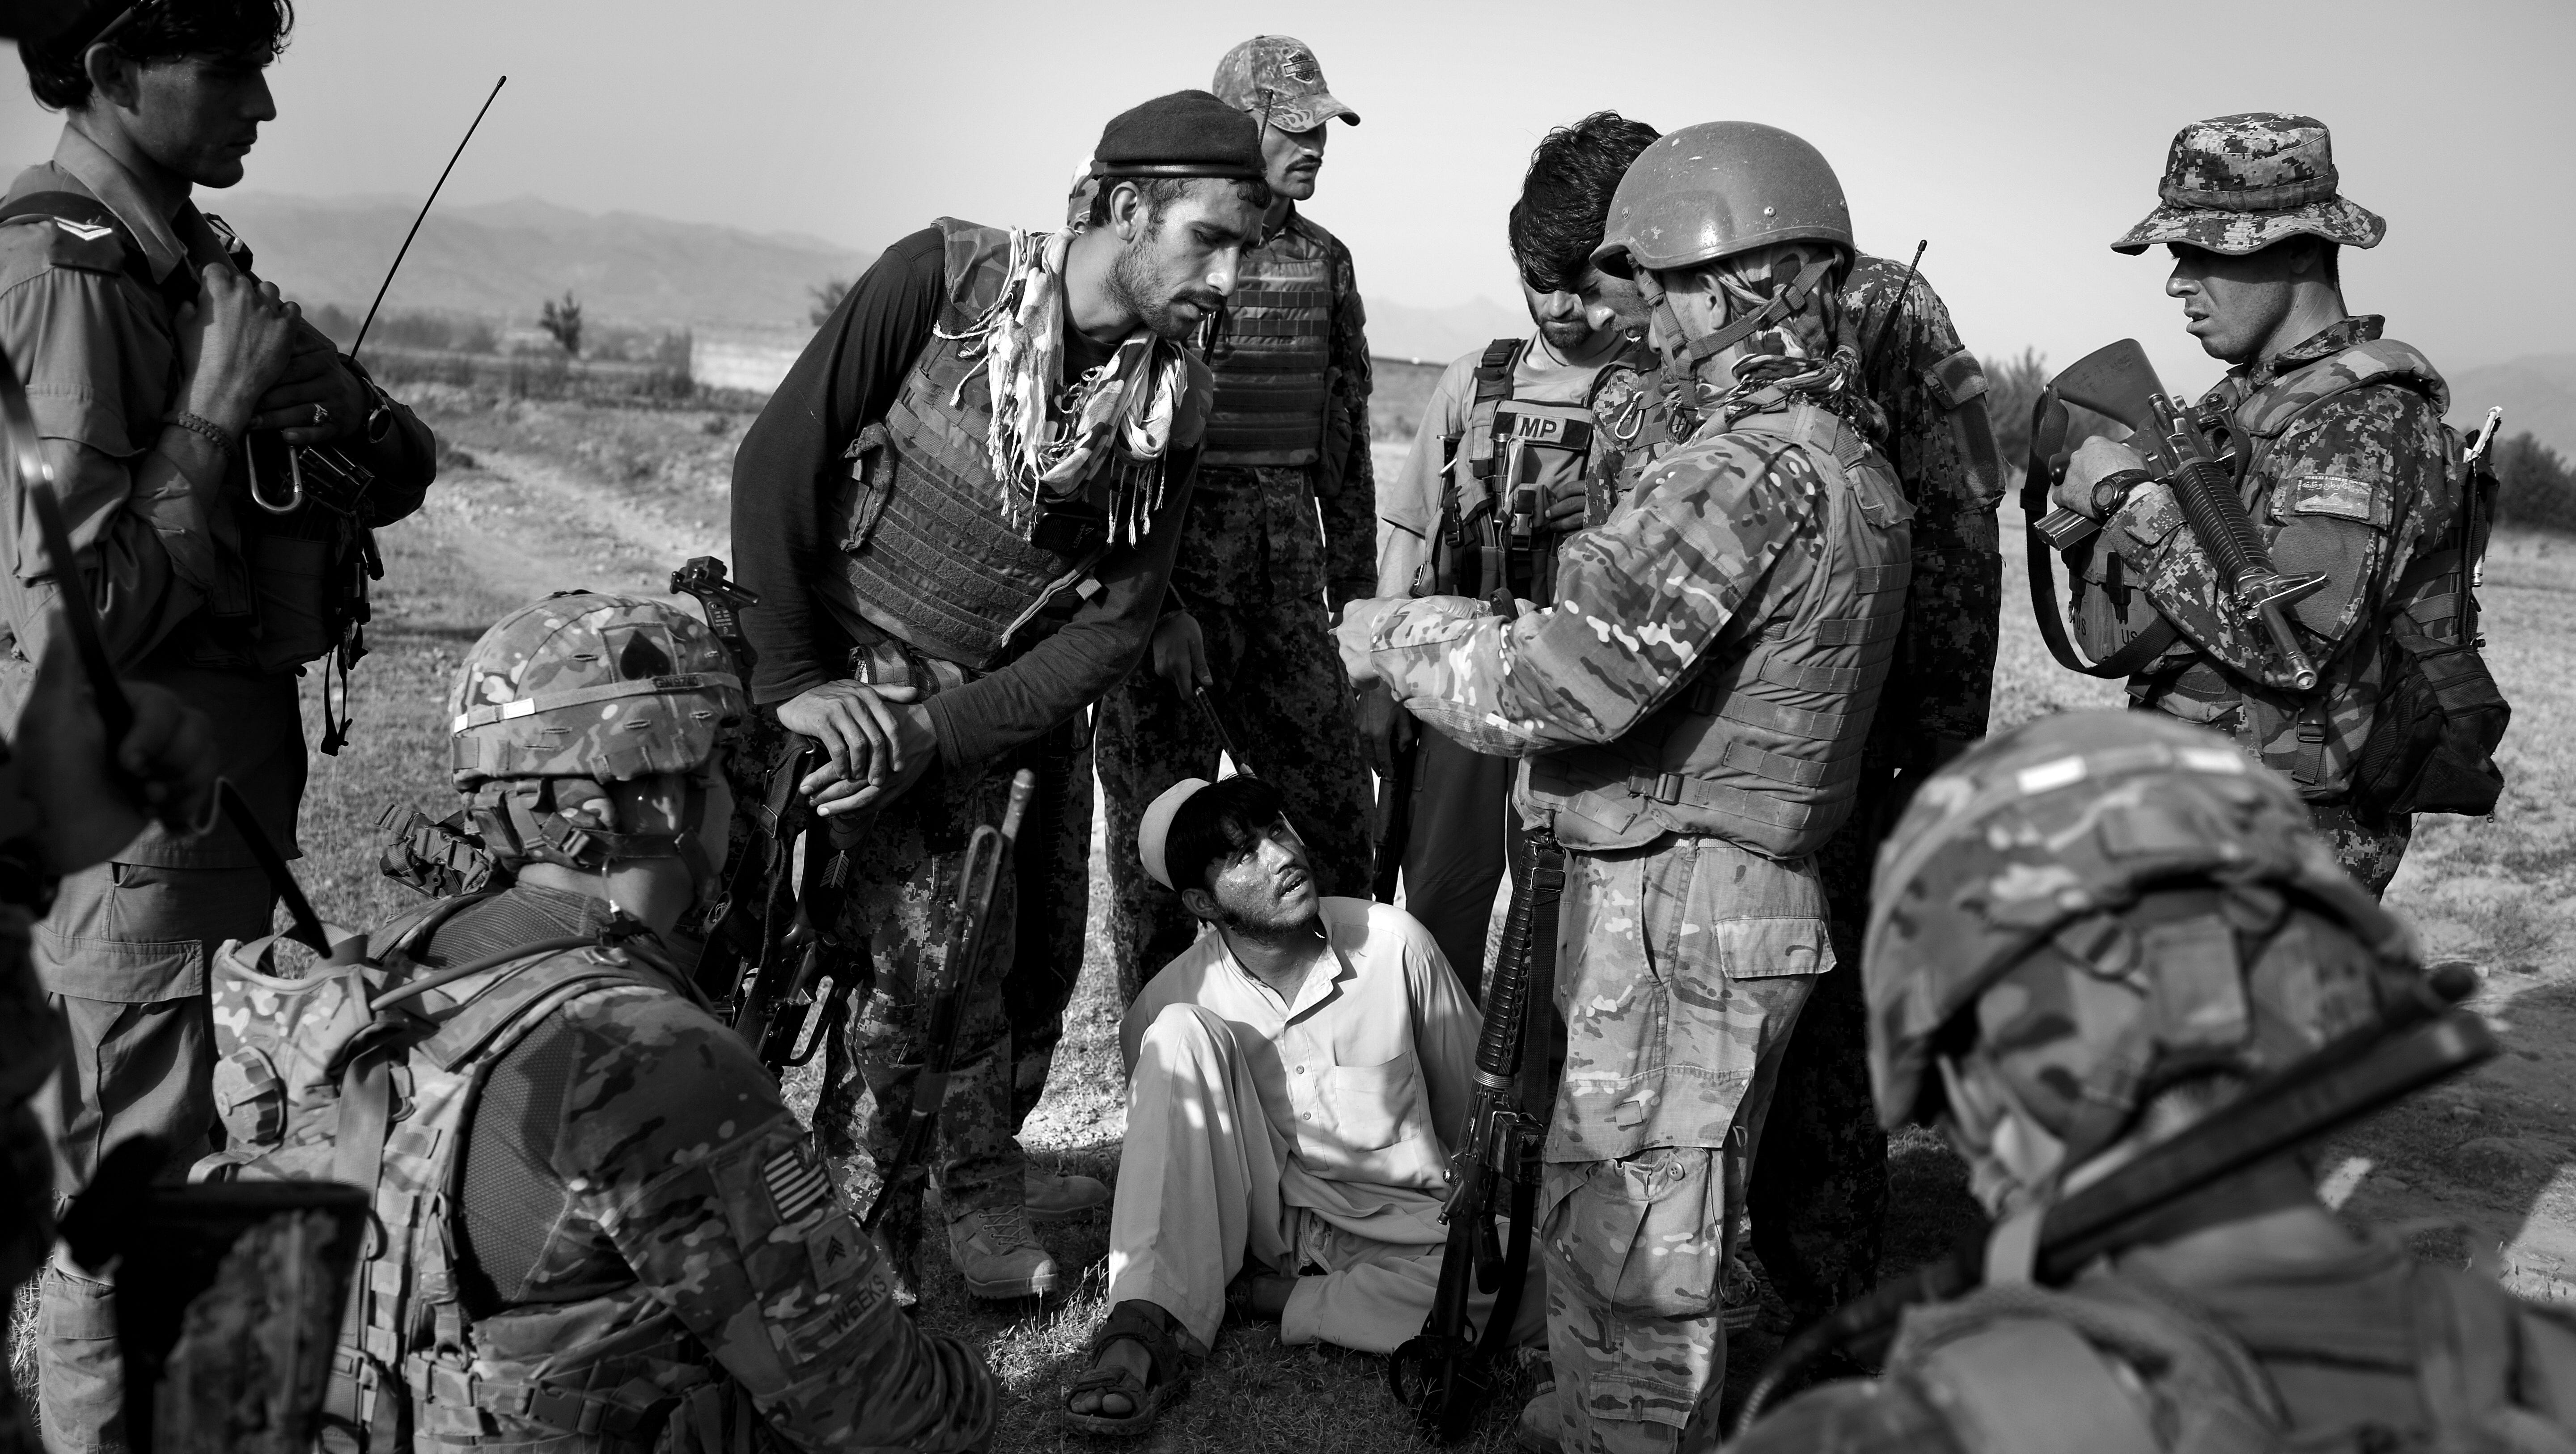 Afghan National Army soldiers and U.S. soldiers from 2nd Platoon Fox Co. of 2-506th Infantry Battalion of the 4th Brigade of the 101st Airborne Division interrogate Mulik, center, a young Afghan they suspect of insurgent ties after they found two IEDs nearby in Khost province.